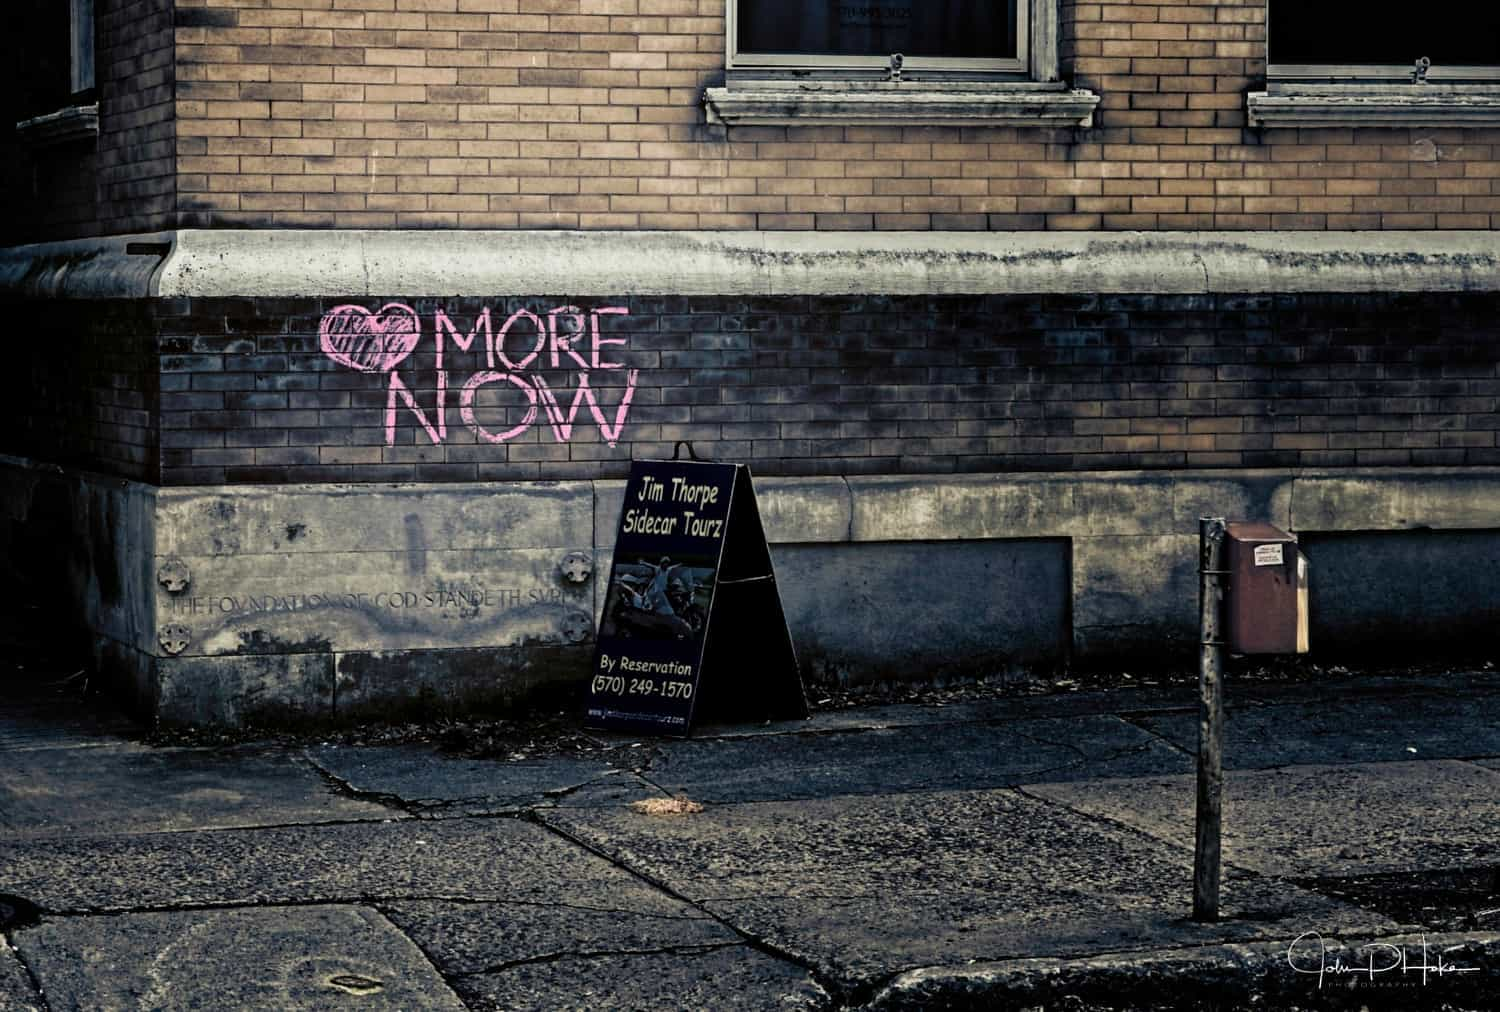 Love More Now! Graffiti in Jim Thorpe